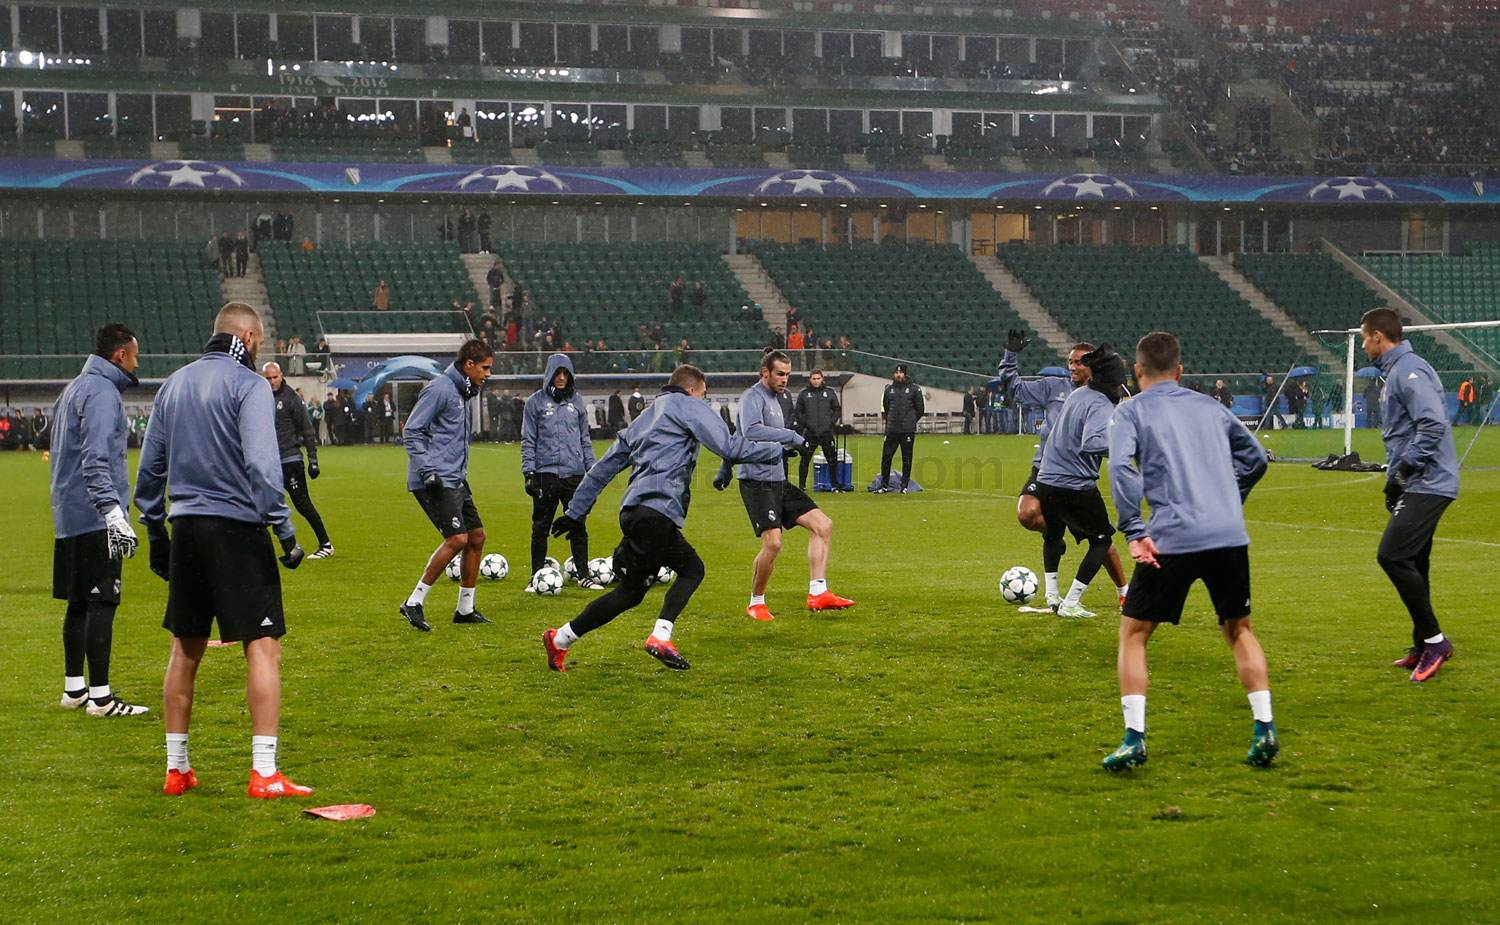 Real Madrid train at Legia\u0026#39;s stadium | Real Madrid CF